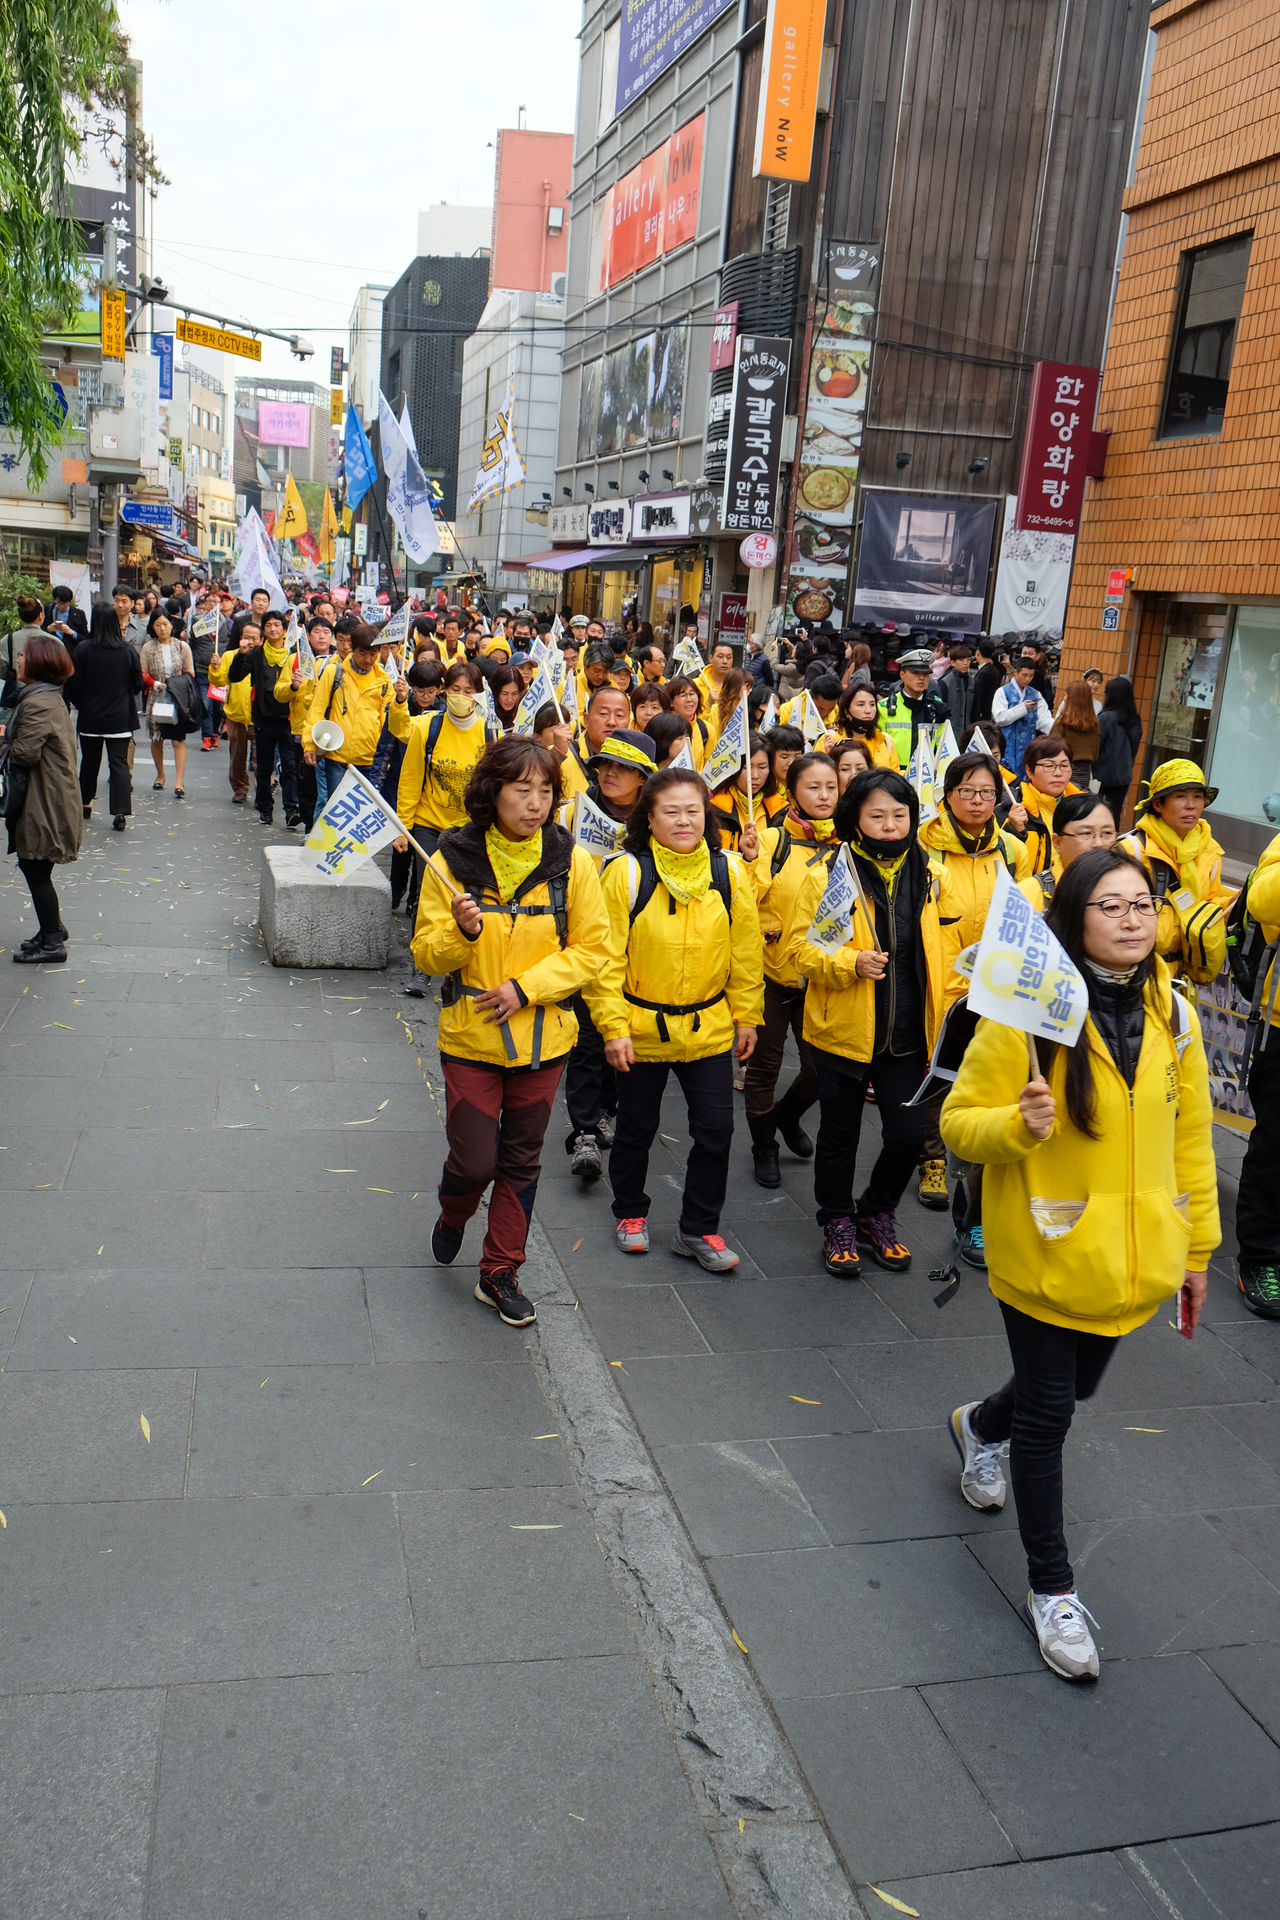 A group of Korean Presidential Protesters at a Seoul shopping street. Adult City Crowd Day Korean Large Group Of People Marching Outdoors People Protest Protesters Protestor Real People Reflective Clothing Riot Street Togetherness Uniform Unity Yellow The Photojournalist - 2017 EyeEm Awards